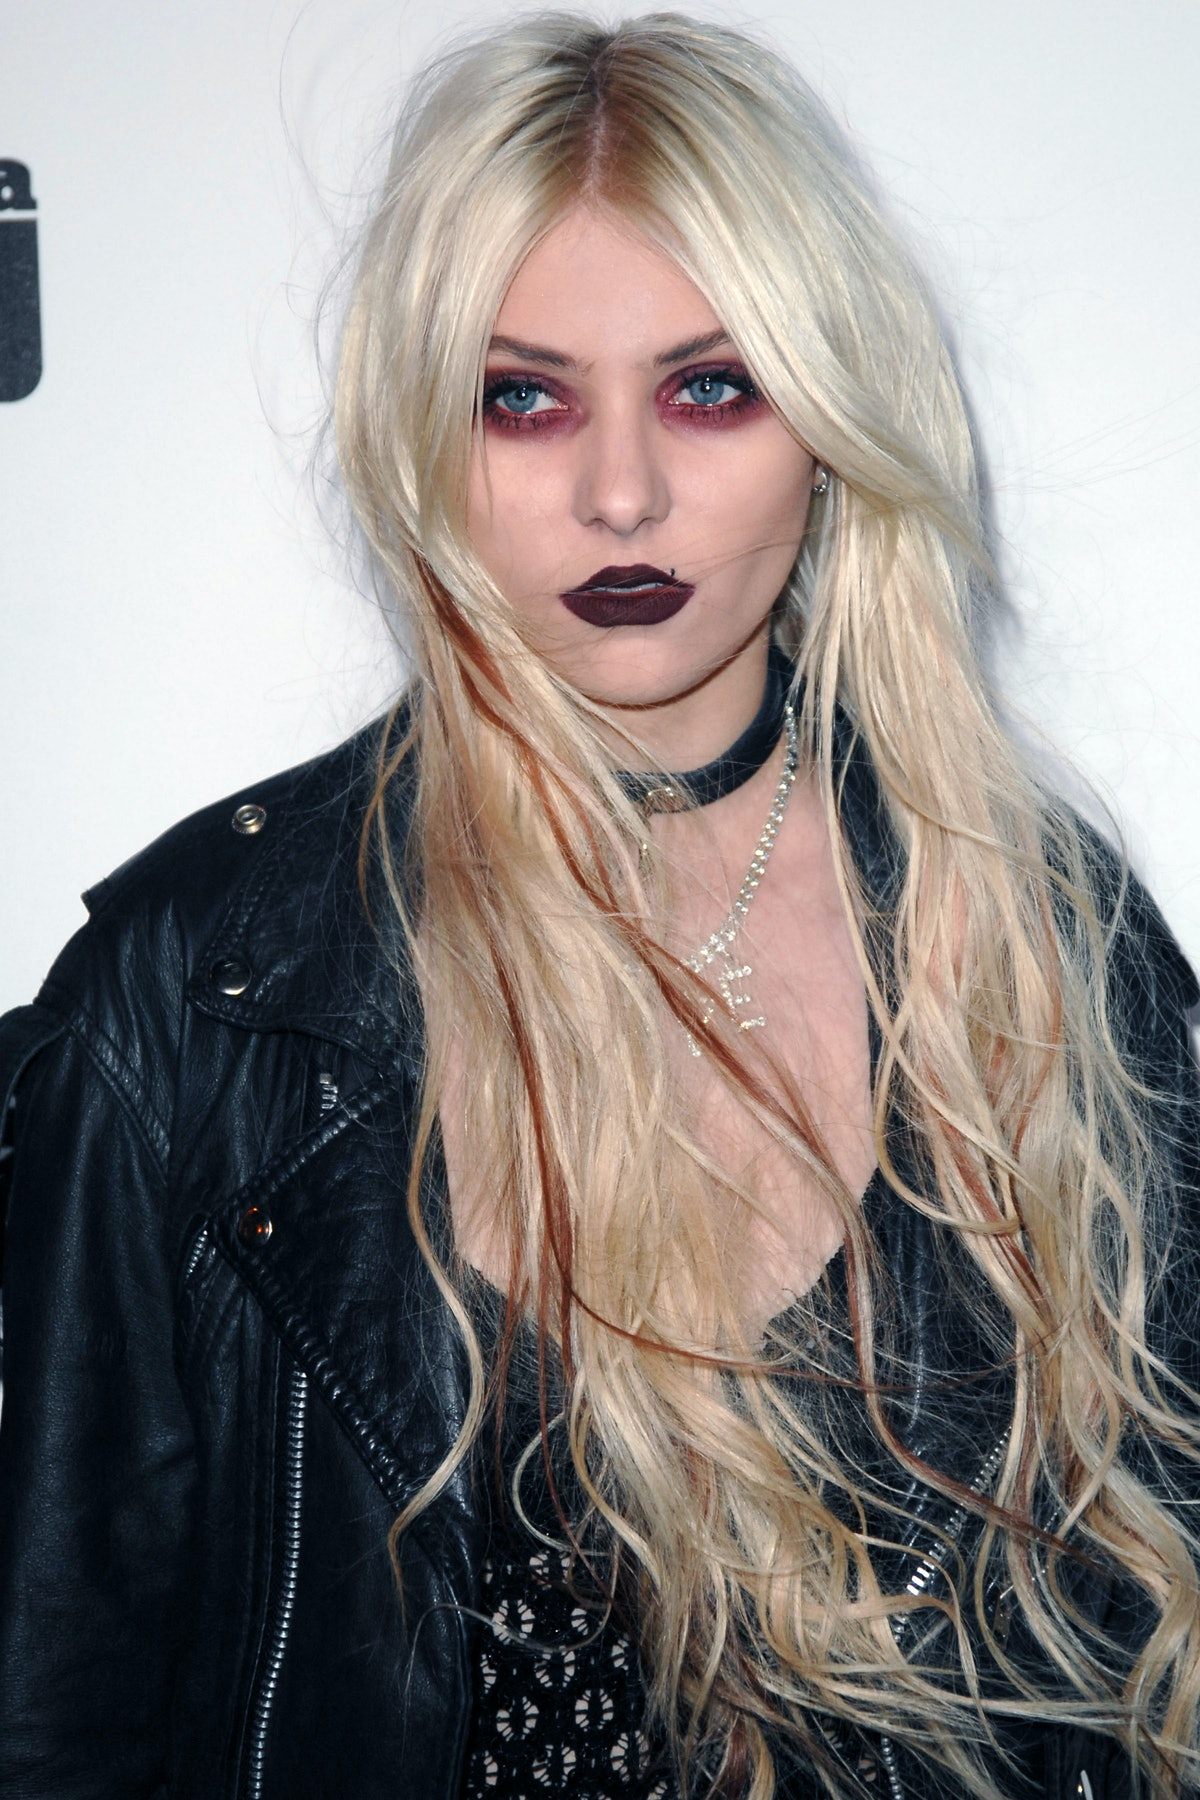 Taylor Momsen of Gossip Girl and The Pretty Reckless wears a modern take on punk makeup, including b...